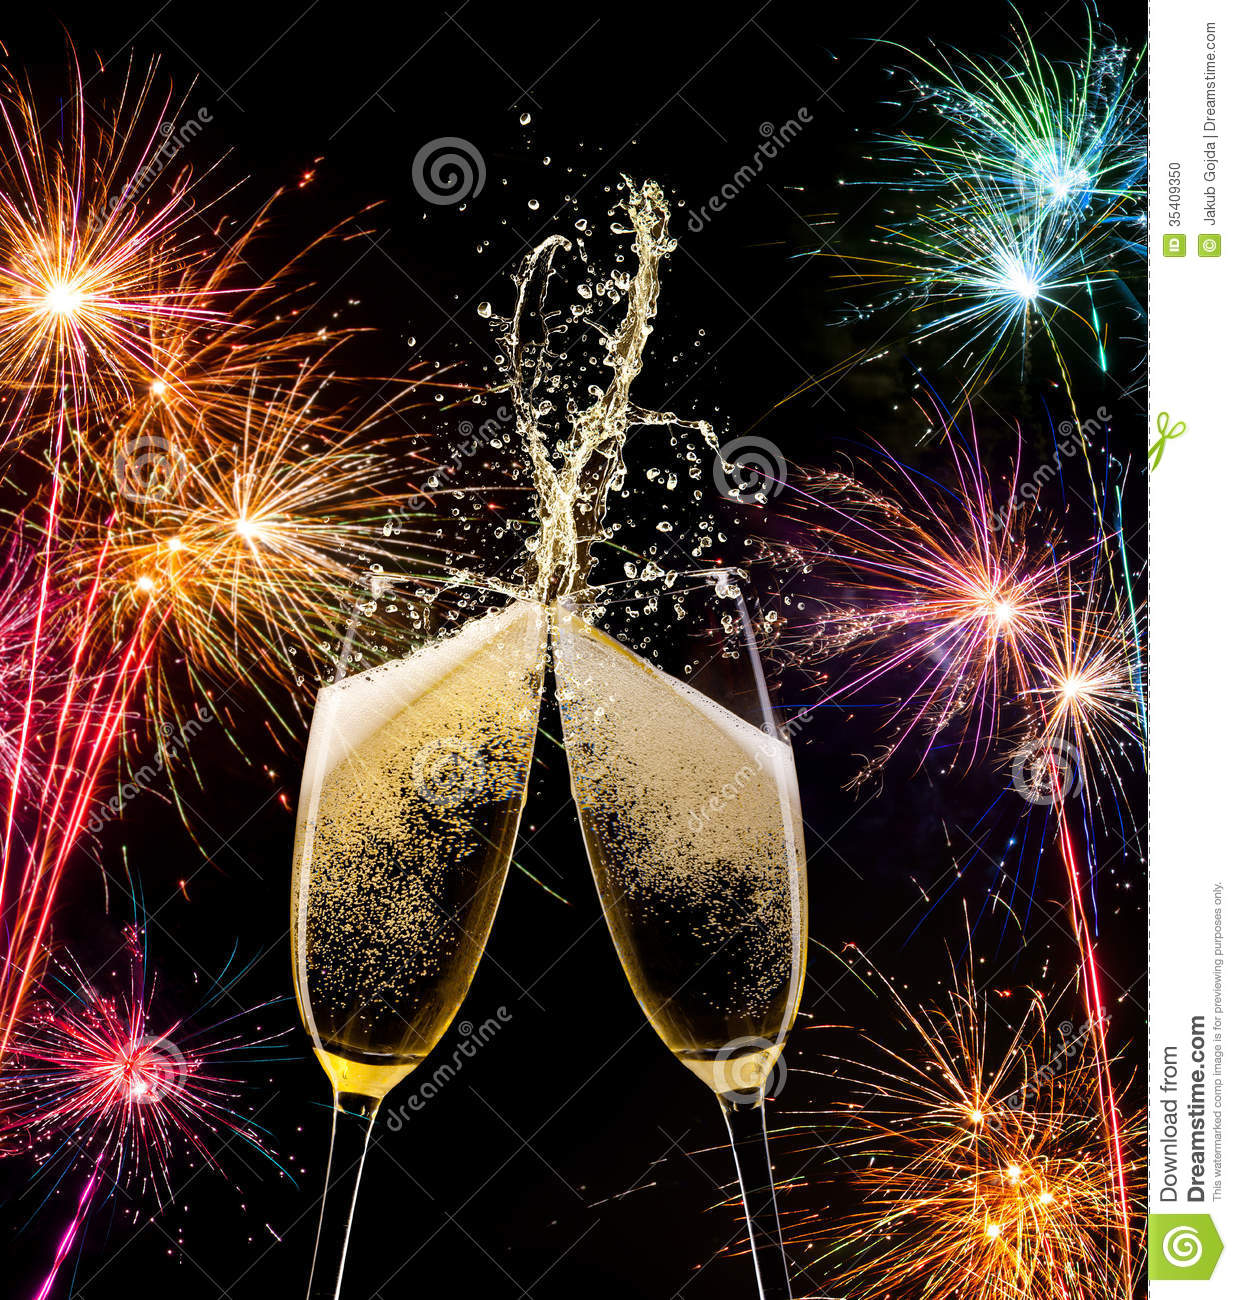 Celebration Theme Stock Photo - Image: 35409350